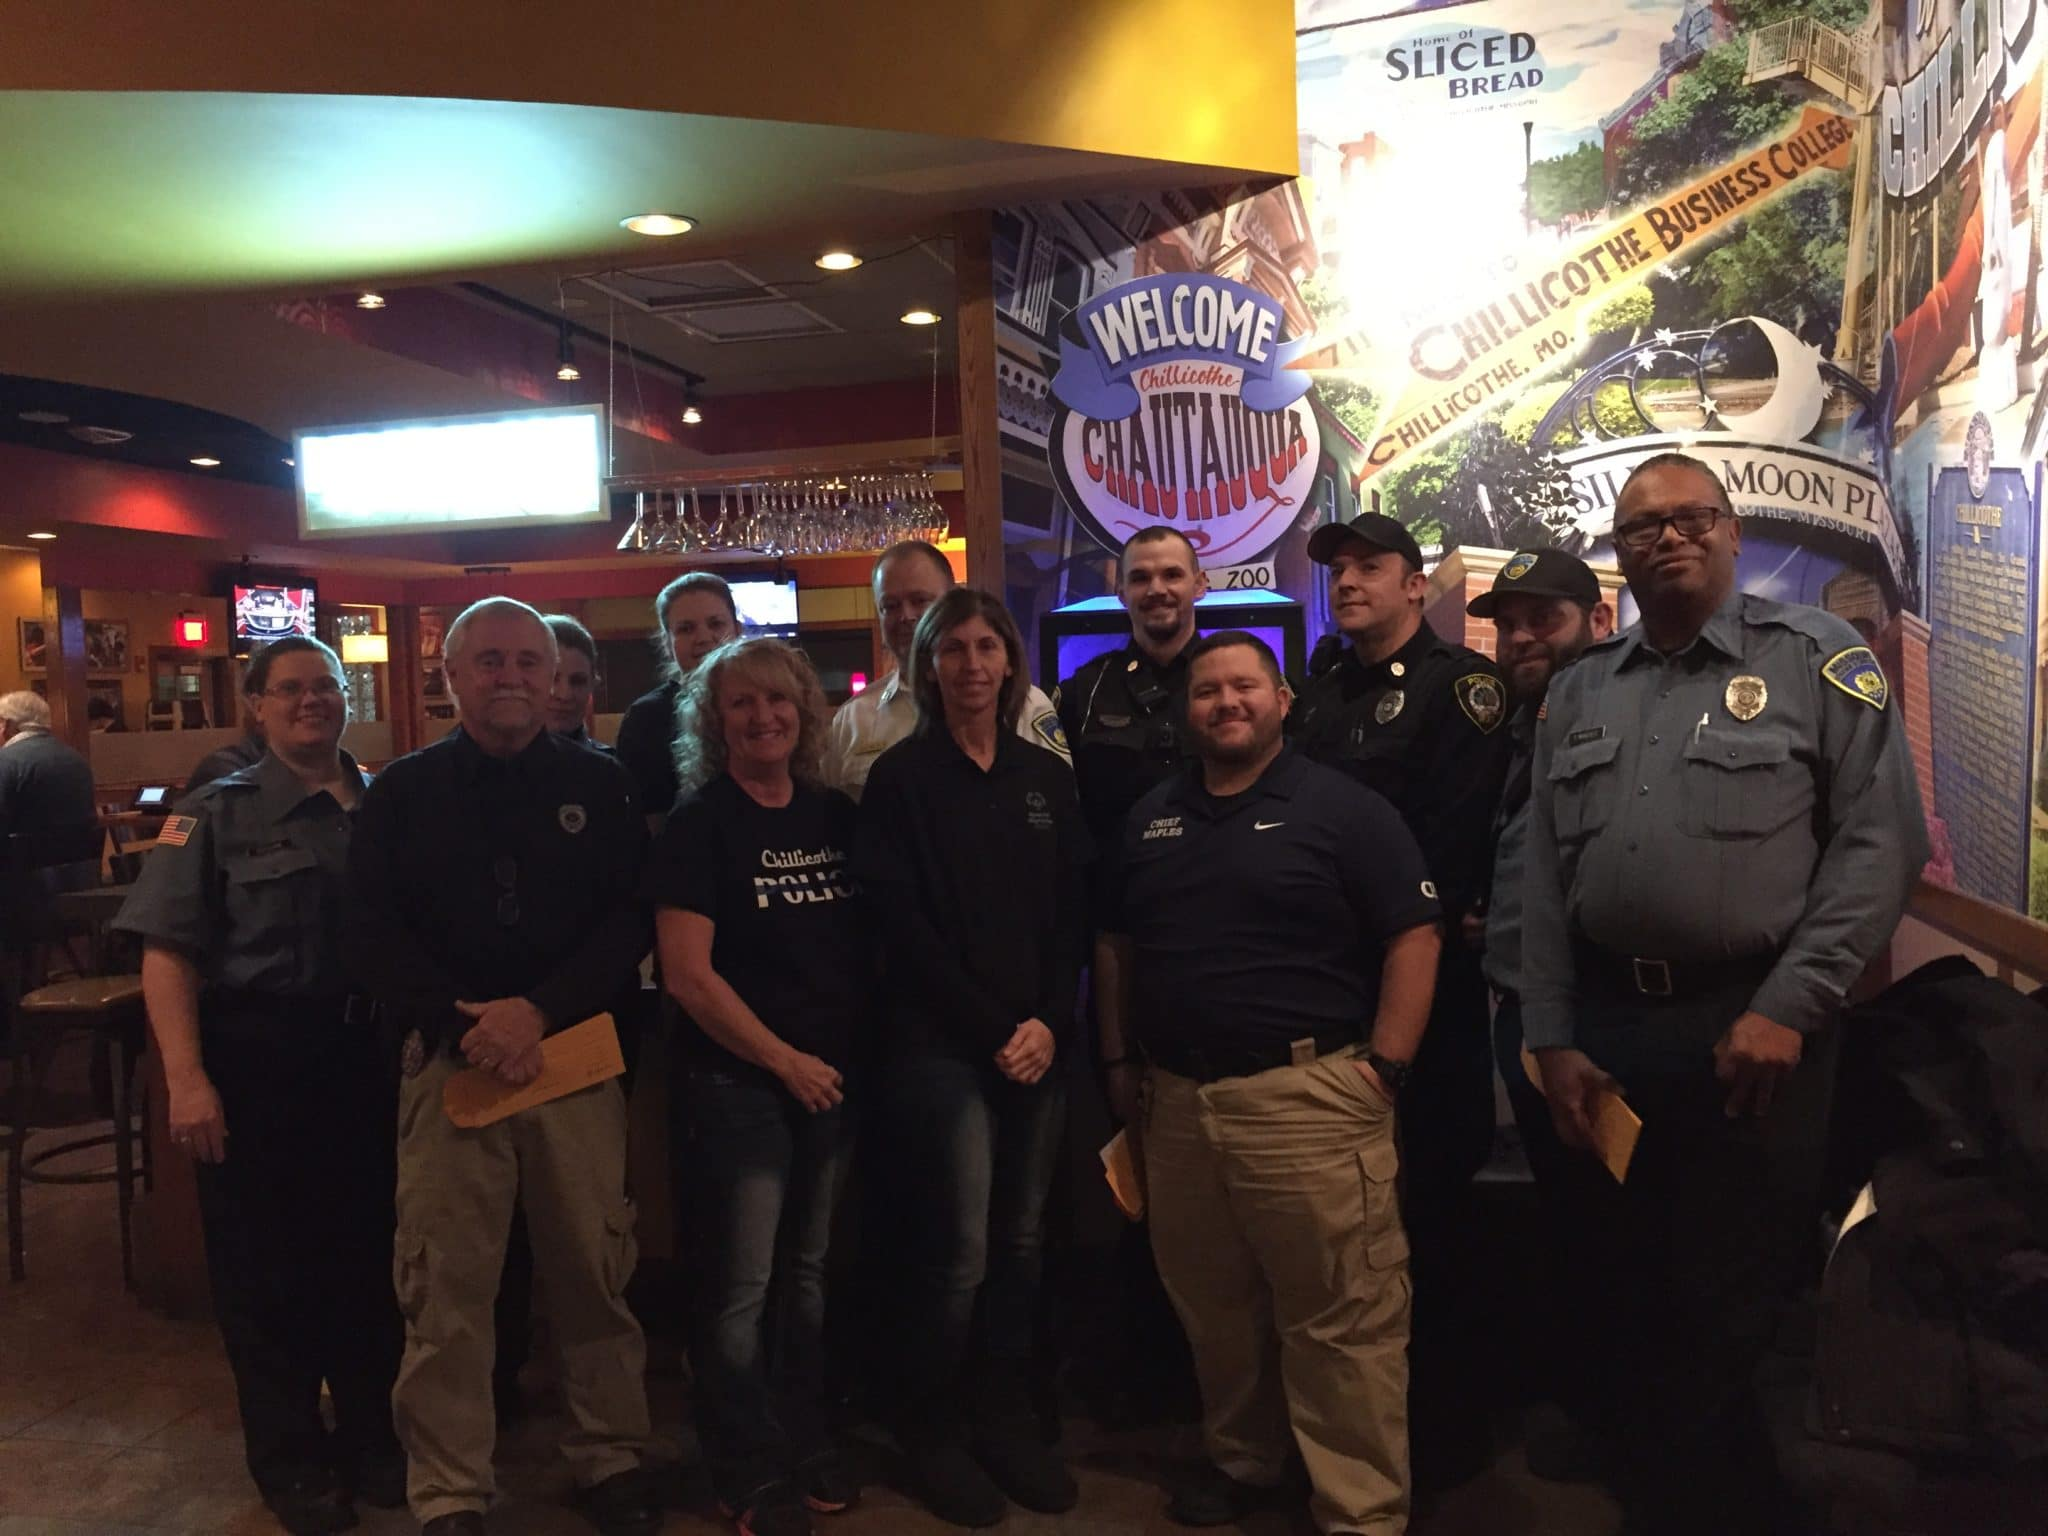 A group of law enforcement officers and servers pose for a photo in a restaurant